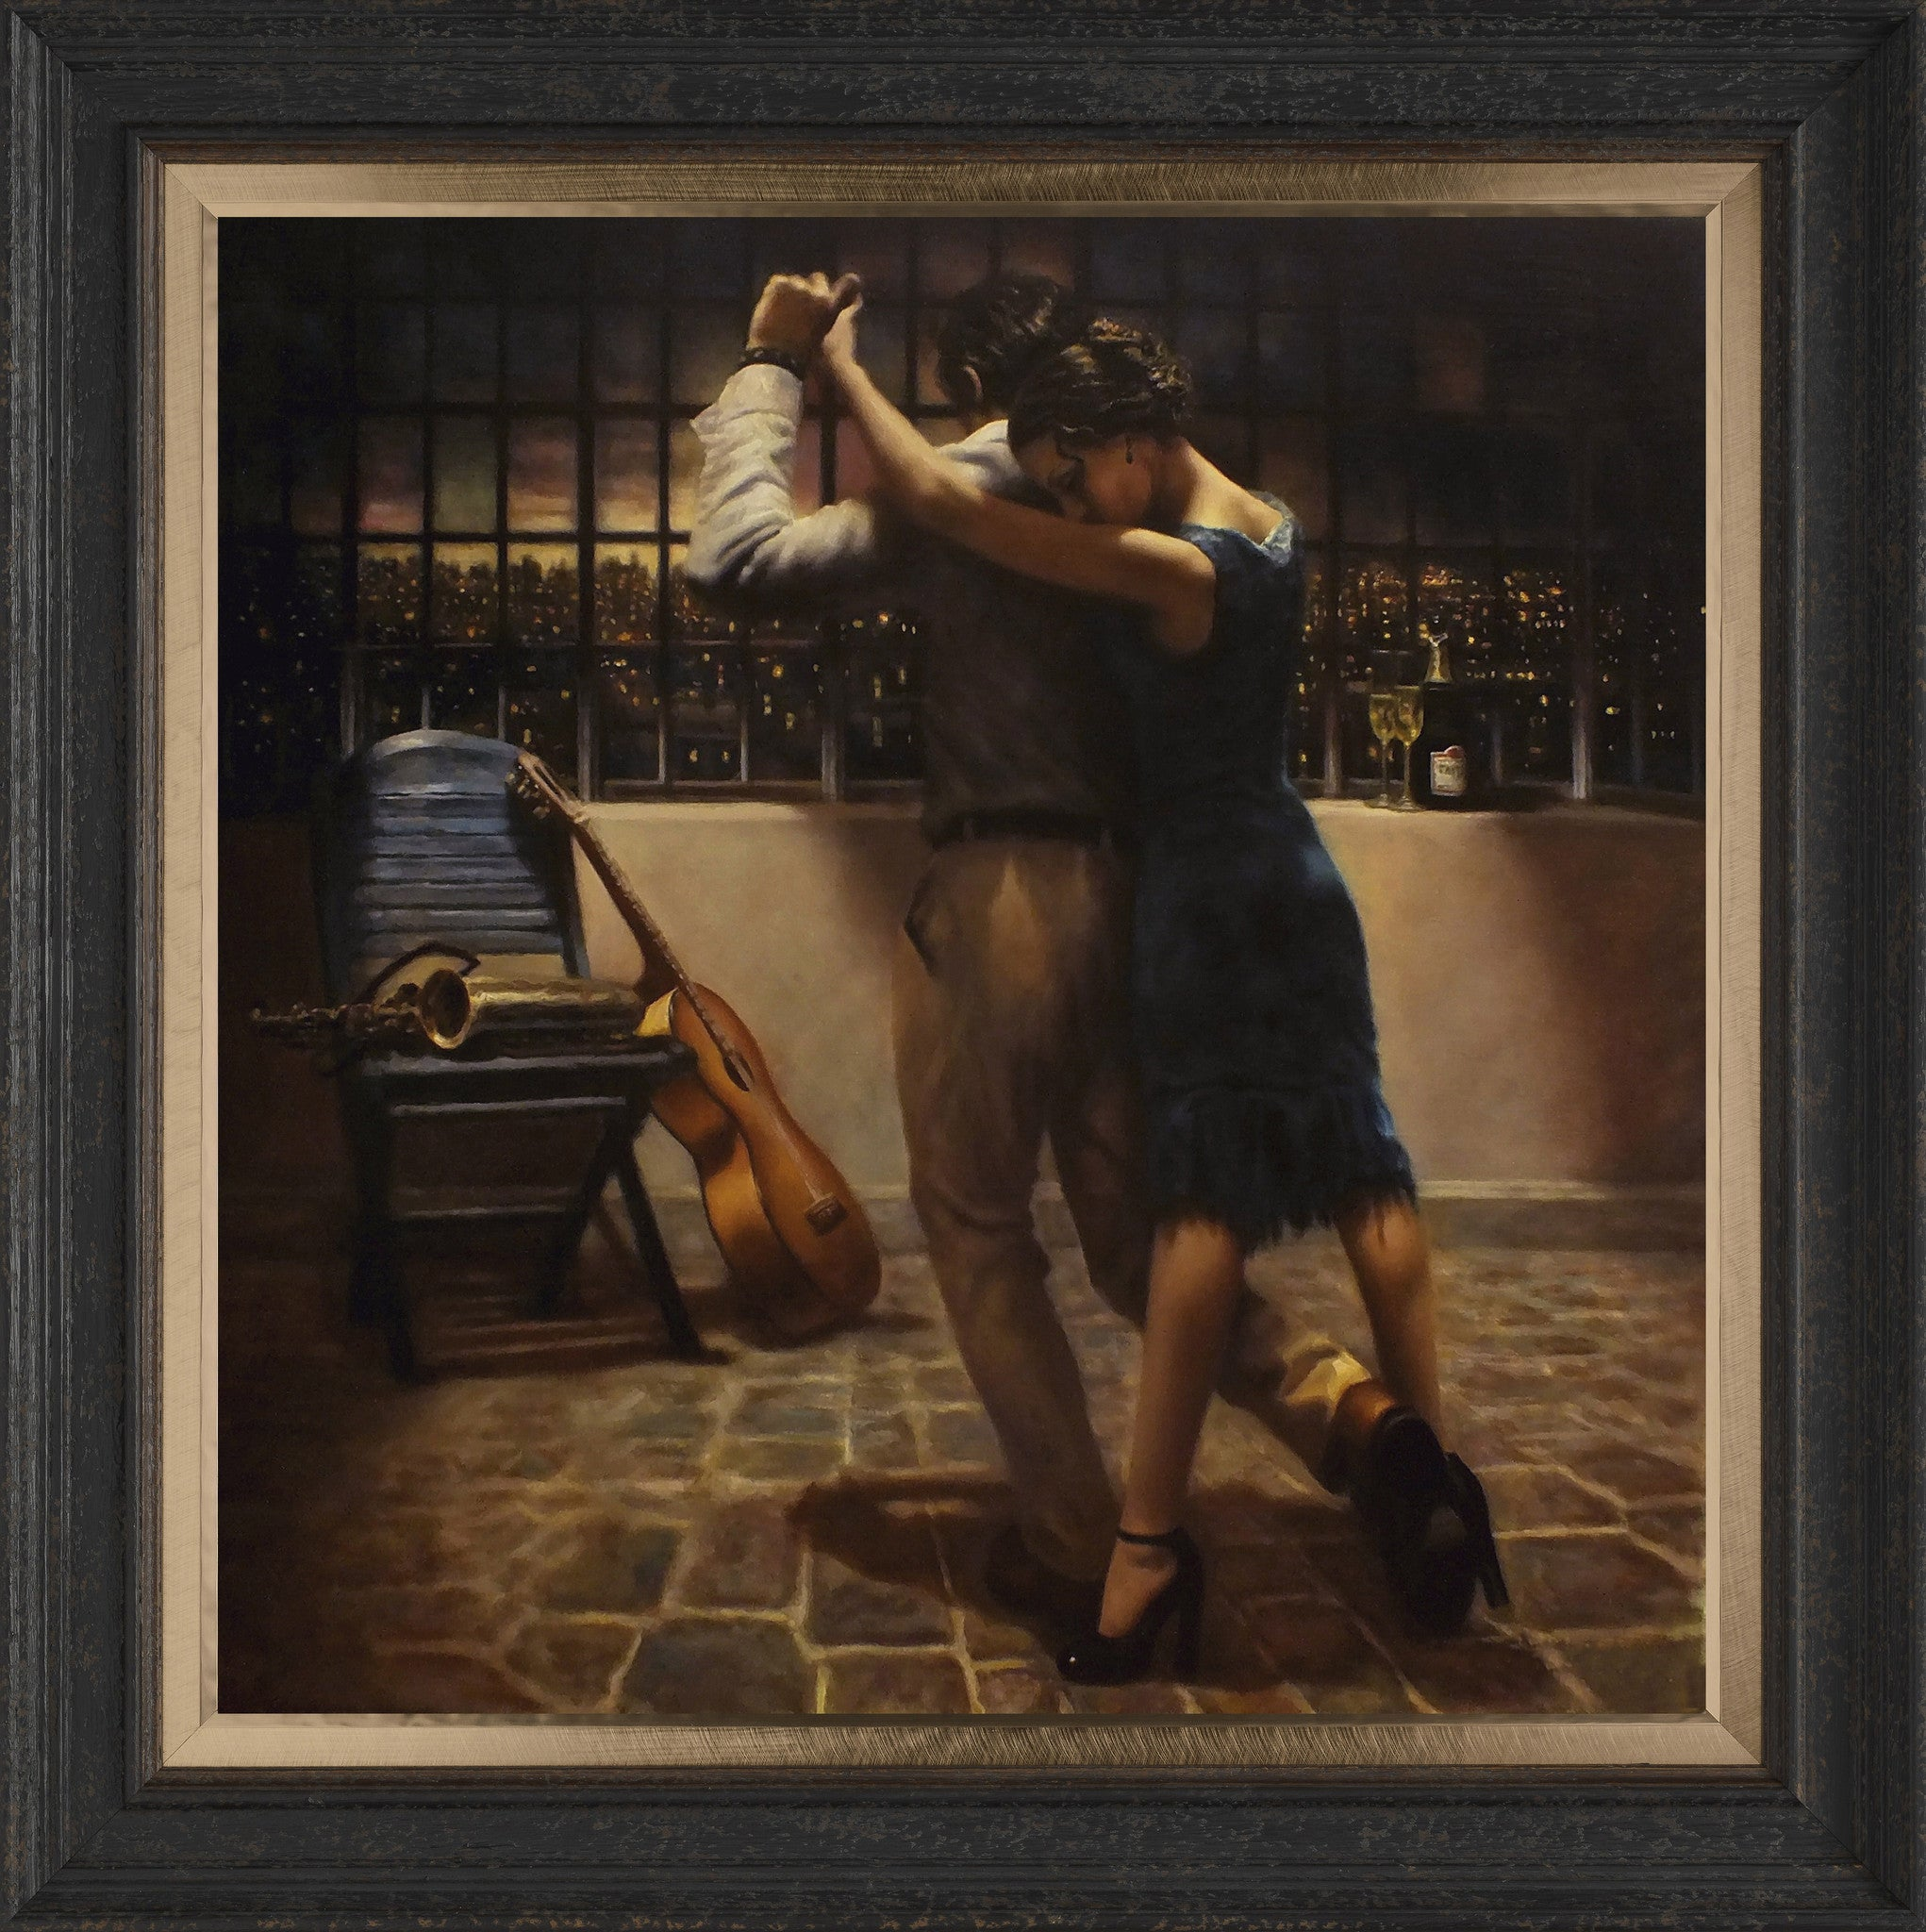 Room at the Top - 2014 - Hamish Blakely - Antidote Art